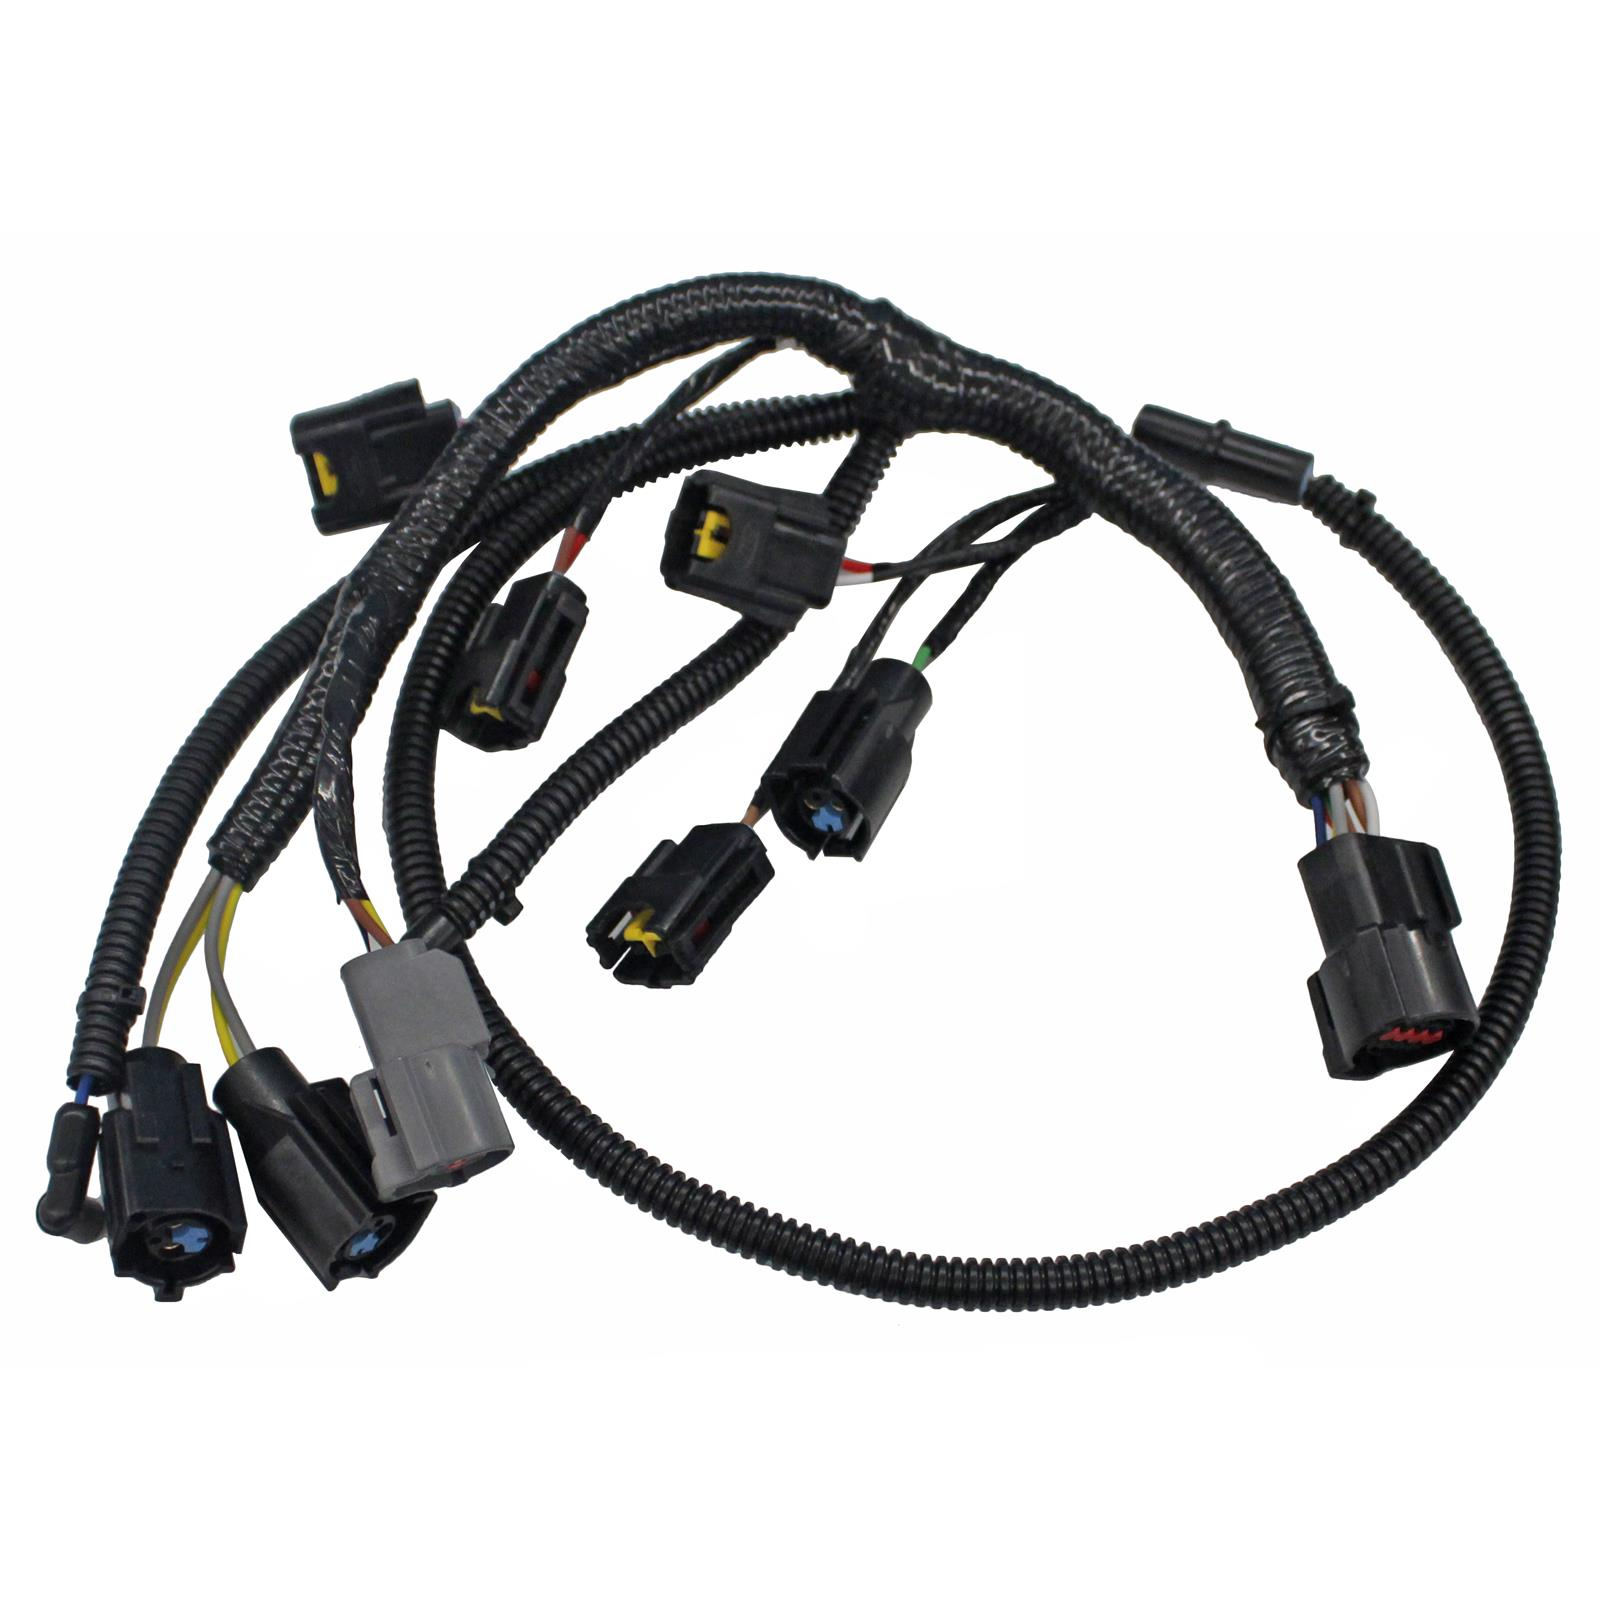 ron francis wiring replacement ford 2.3l turbo efi injector harnesses fh23  summit racing